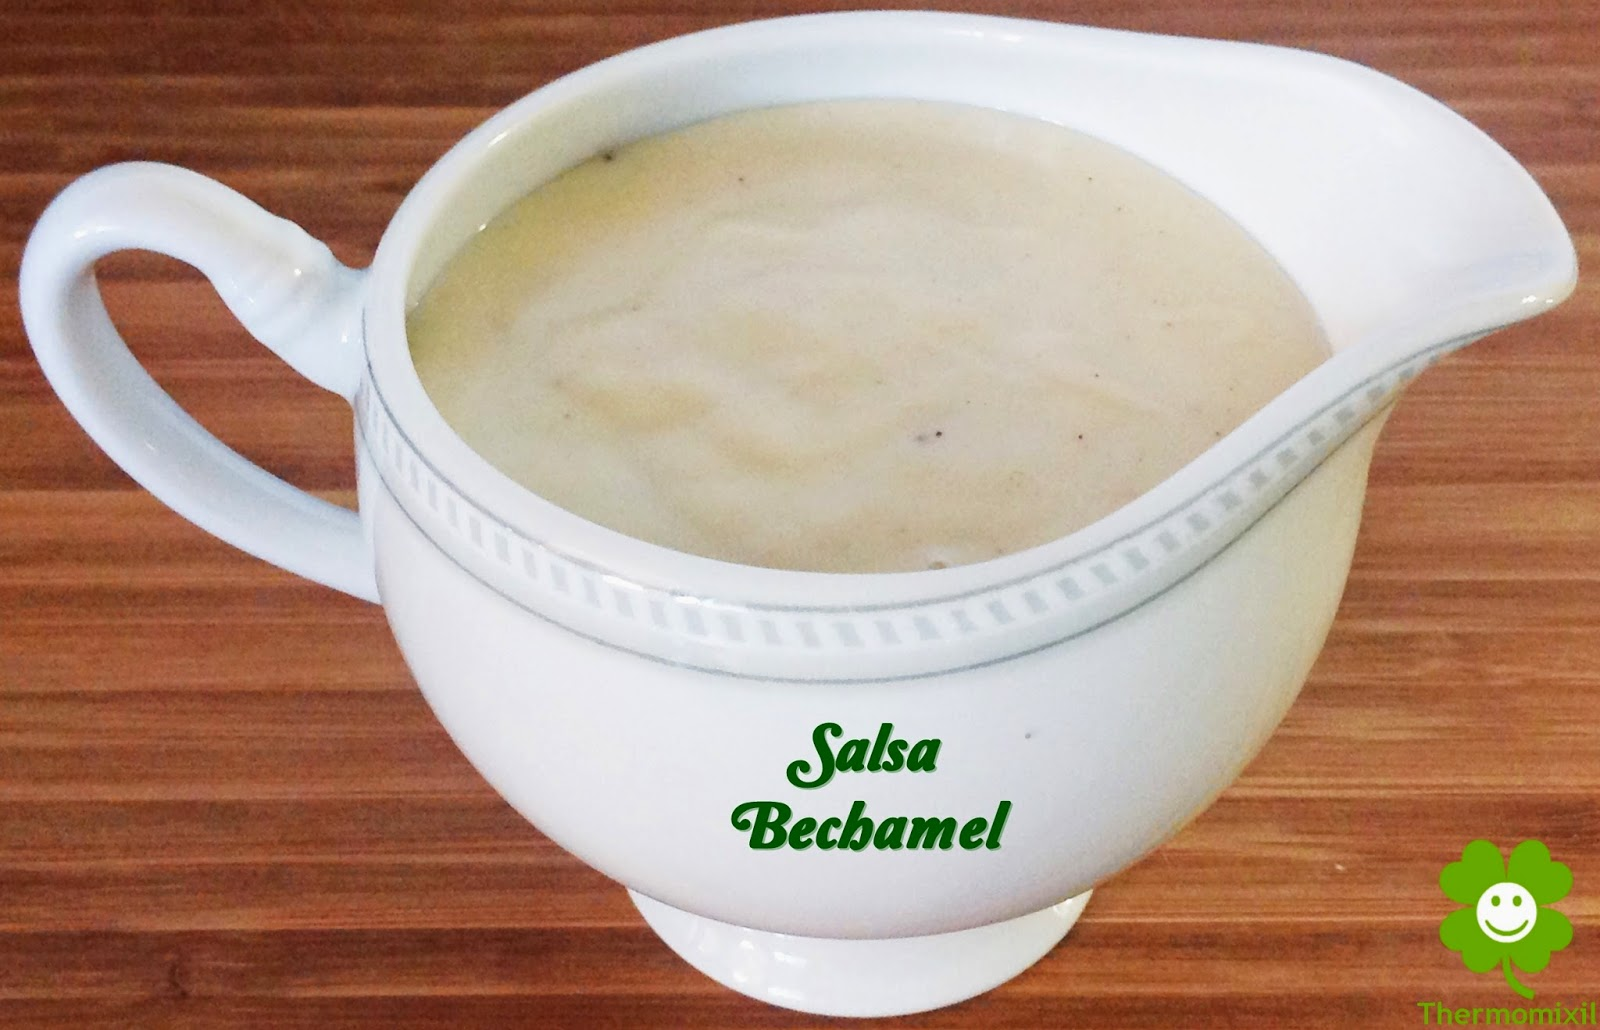 BECHAMEL CON THERMOMIX+THERMOMIXIL